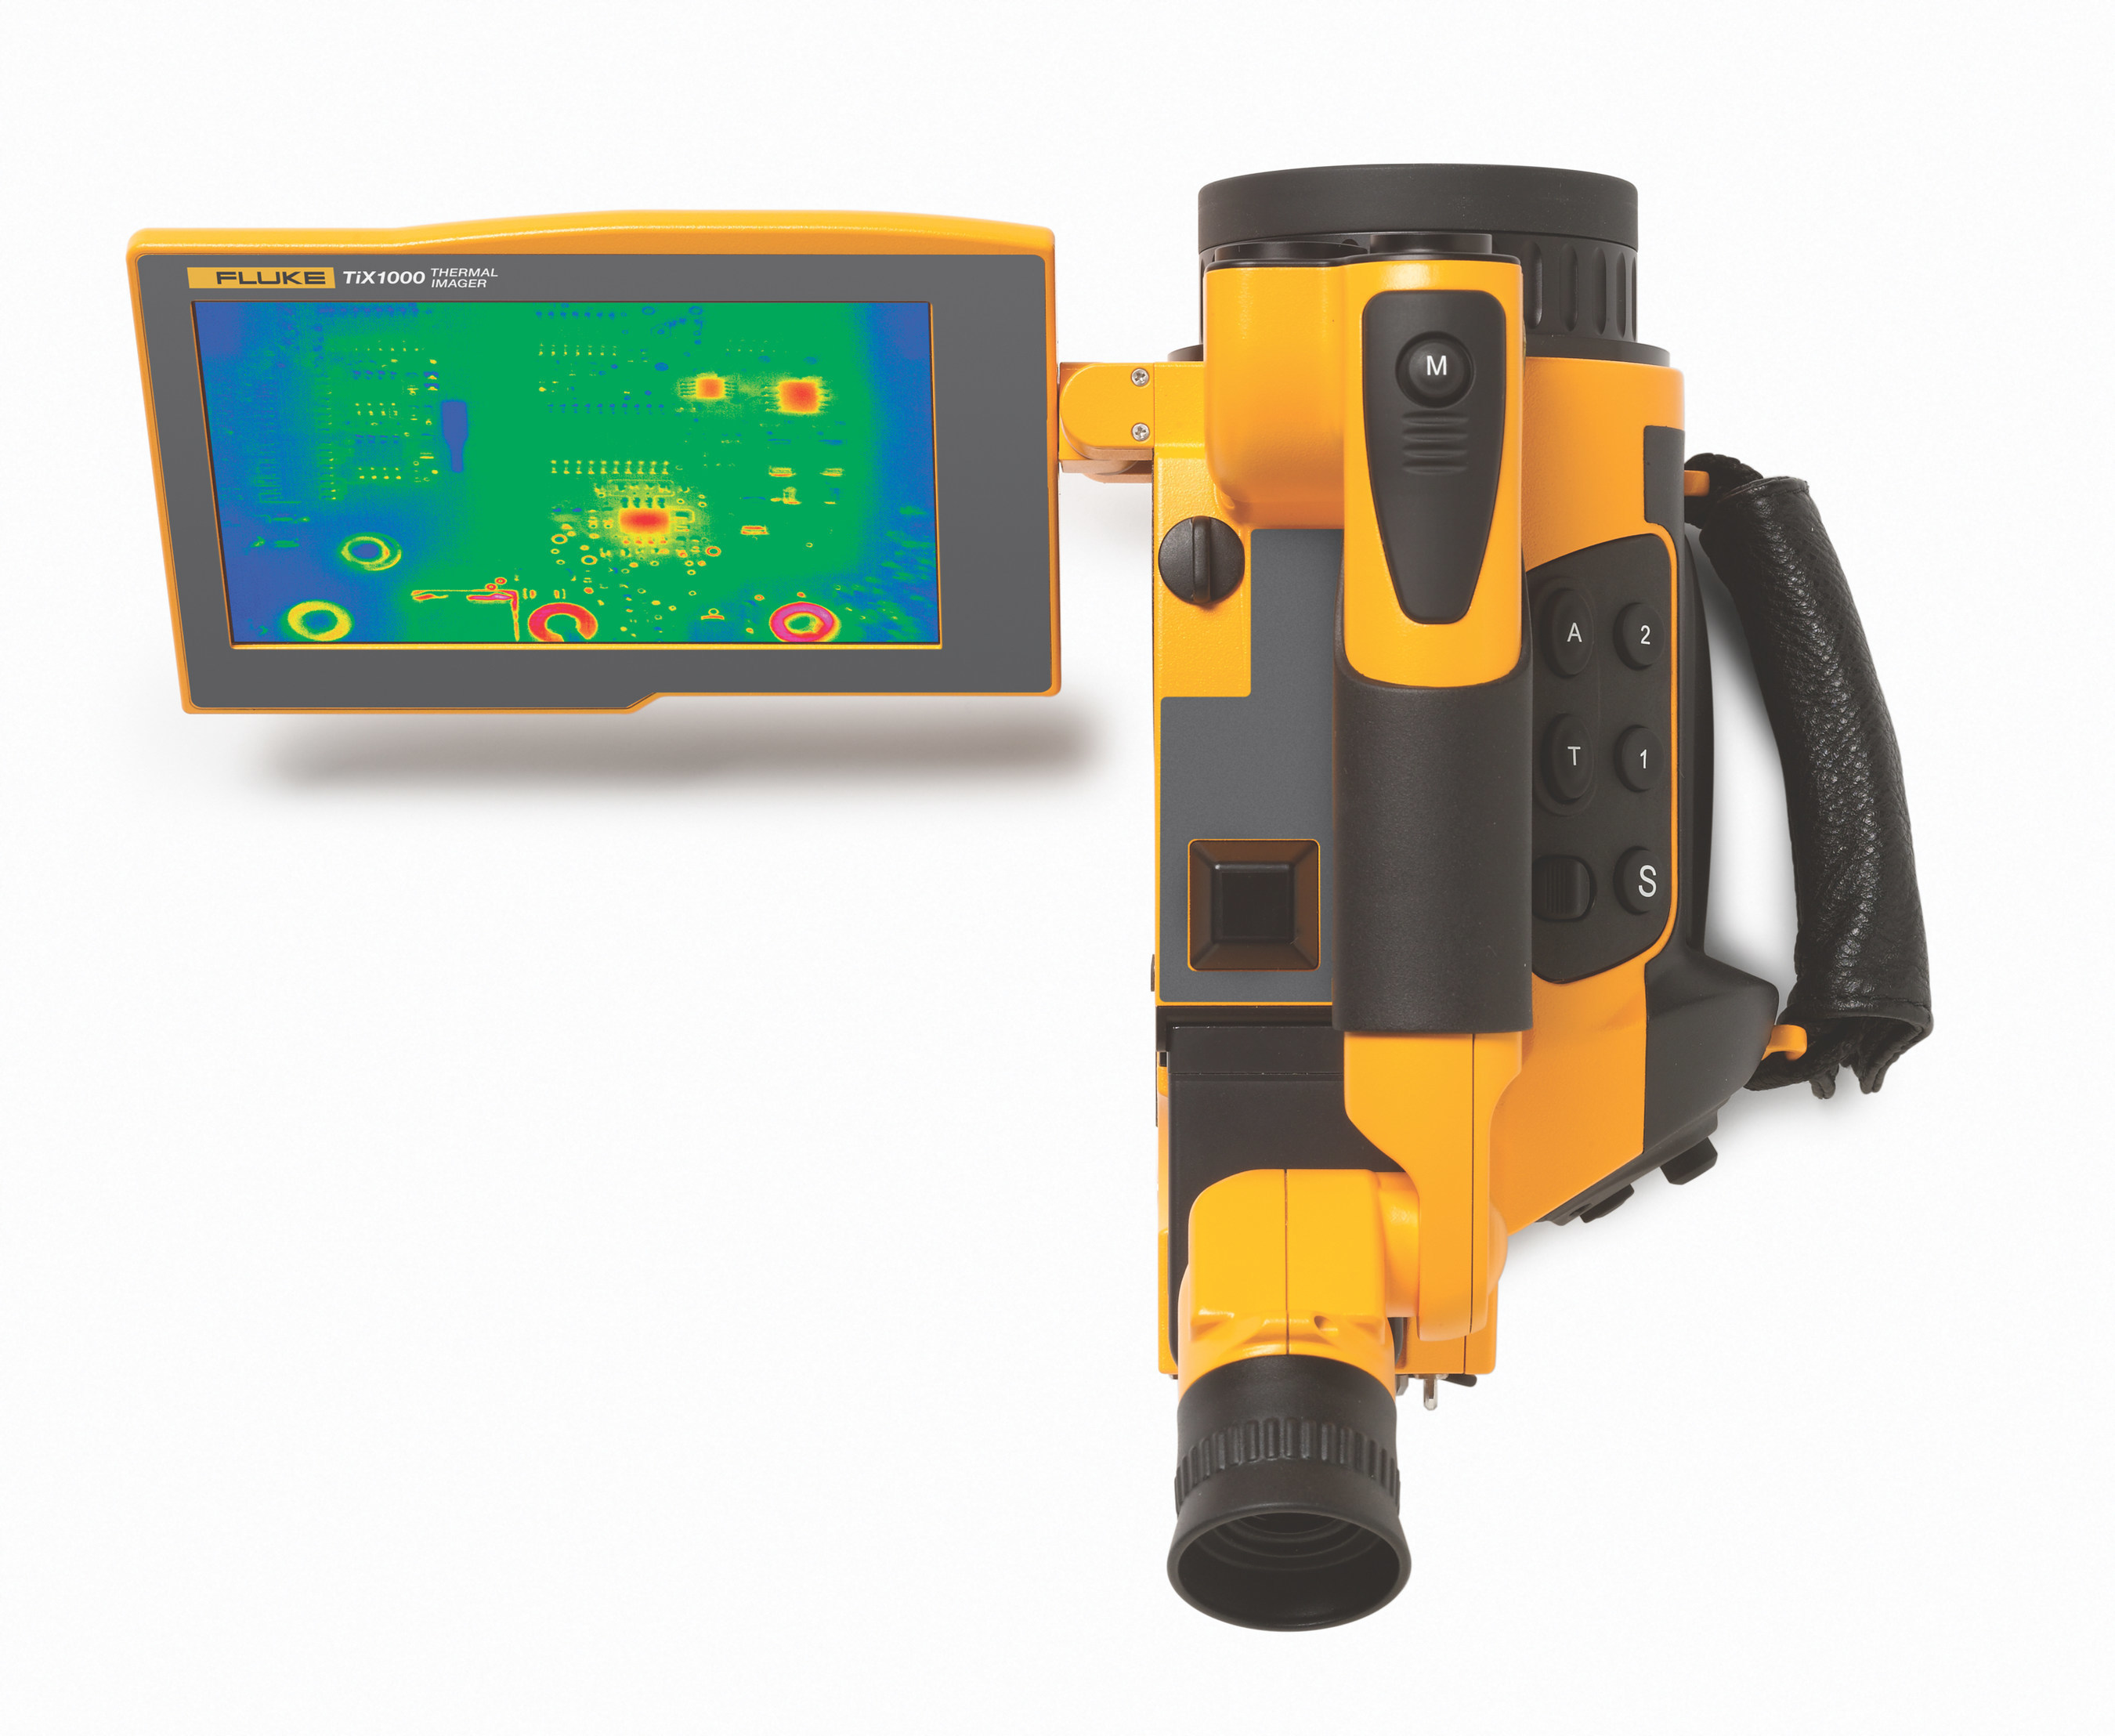 The software allows continuous download of pixel-by-pixel, high-resolution radiometric data. R&D professionals can now use any of these six highest-resolution Fluke infrared cameras to thermally capture video and port the video data frame-by-frame into their MATLAB or LabVIEW software, and monitor it over time, identifying very small temperature changes that could indicate problems.